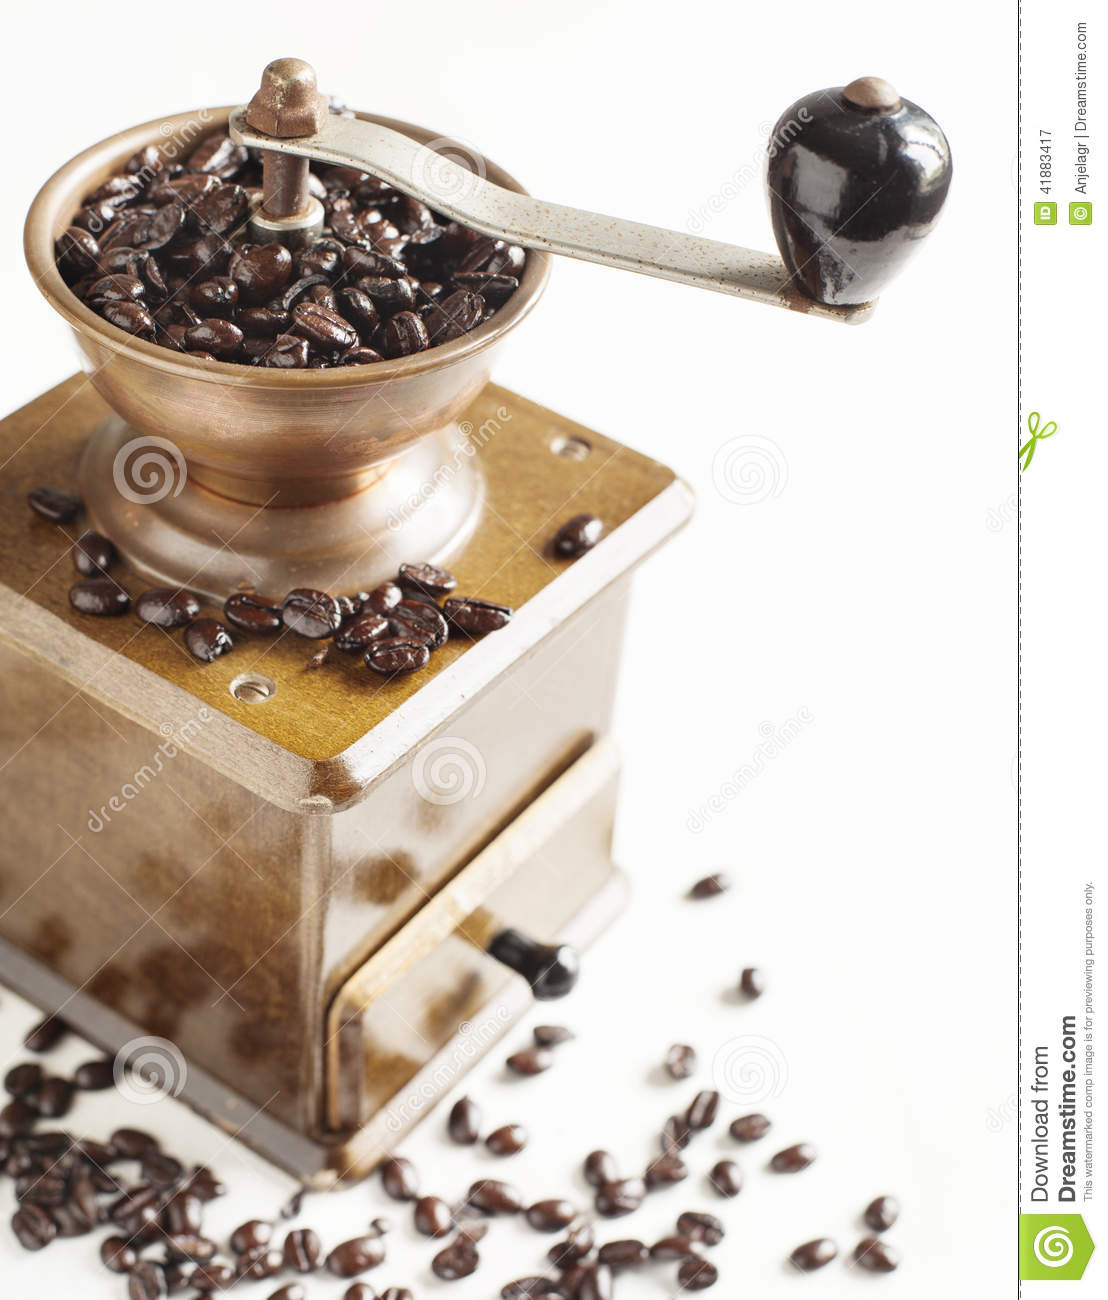 Download Antique Coffee Grinder With Coffee Beans Stock Image - Image of vintage, natural: 41883417